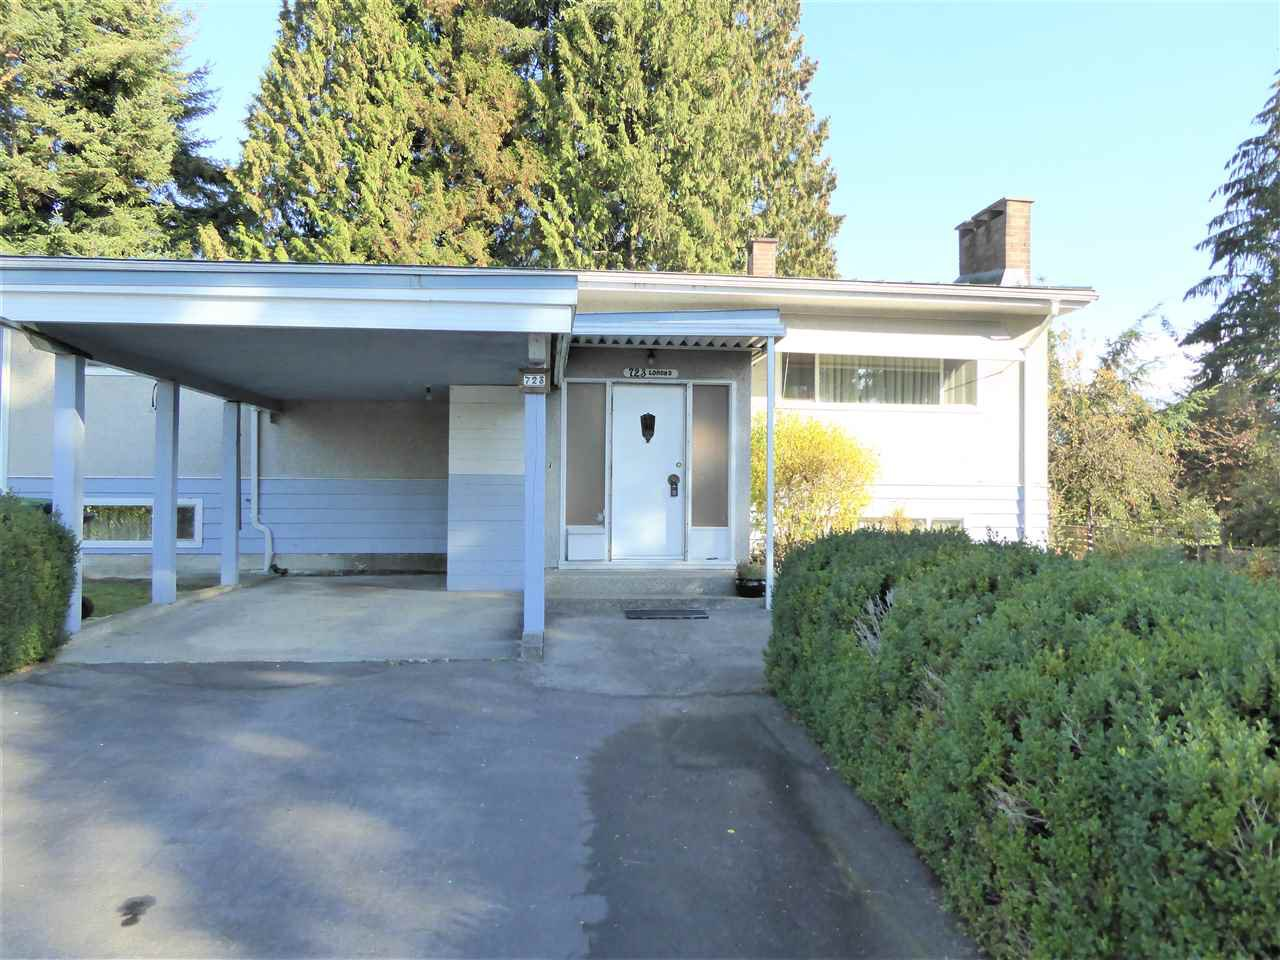 Main Photo: 723 LOMOND Street in Coquitlam: Central Coquitlam House for sale : MLS®# R2317097